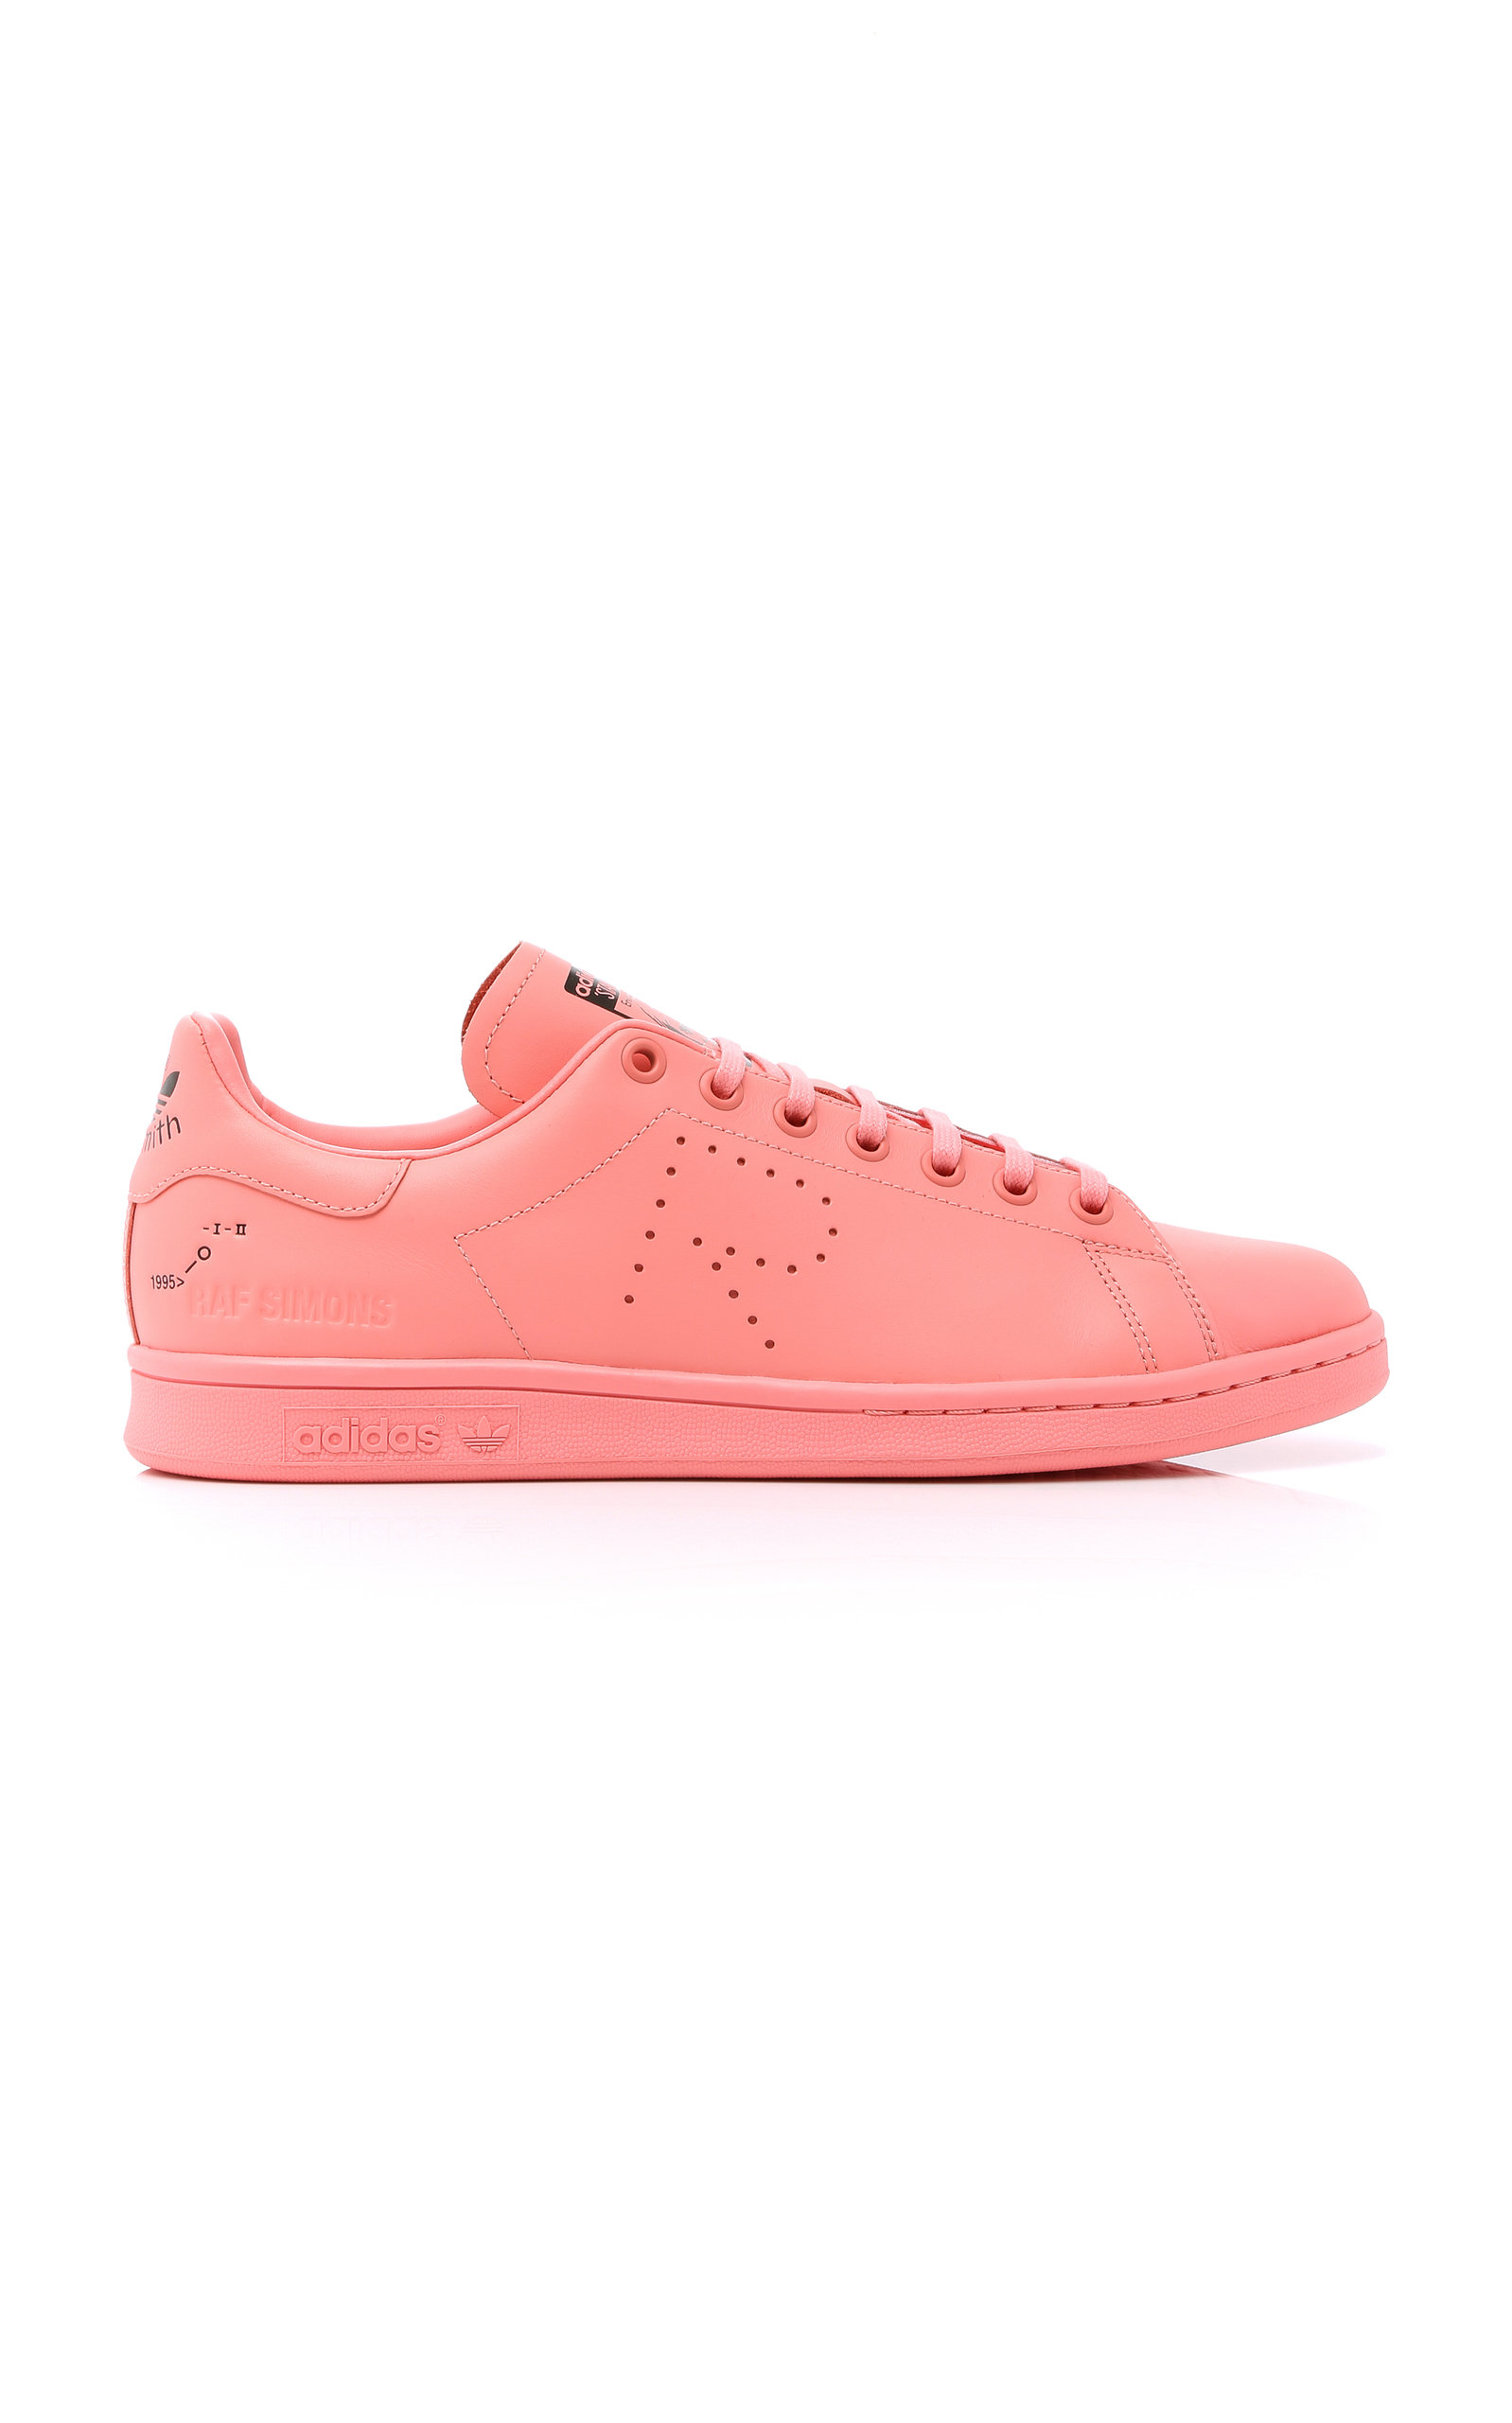 Unisex Stan Smith Leather Sneakers in Tacros/Blipnk/Ftwwht